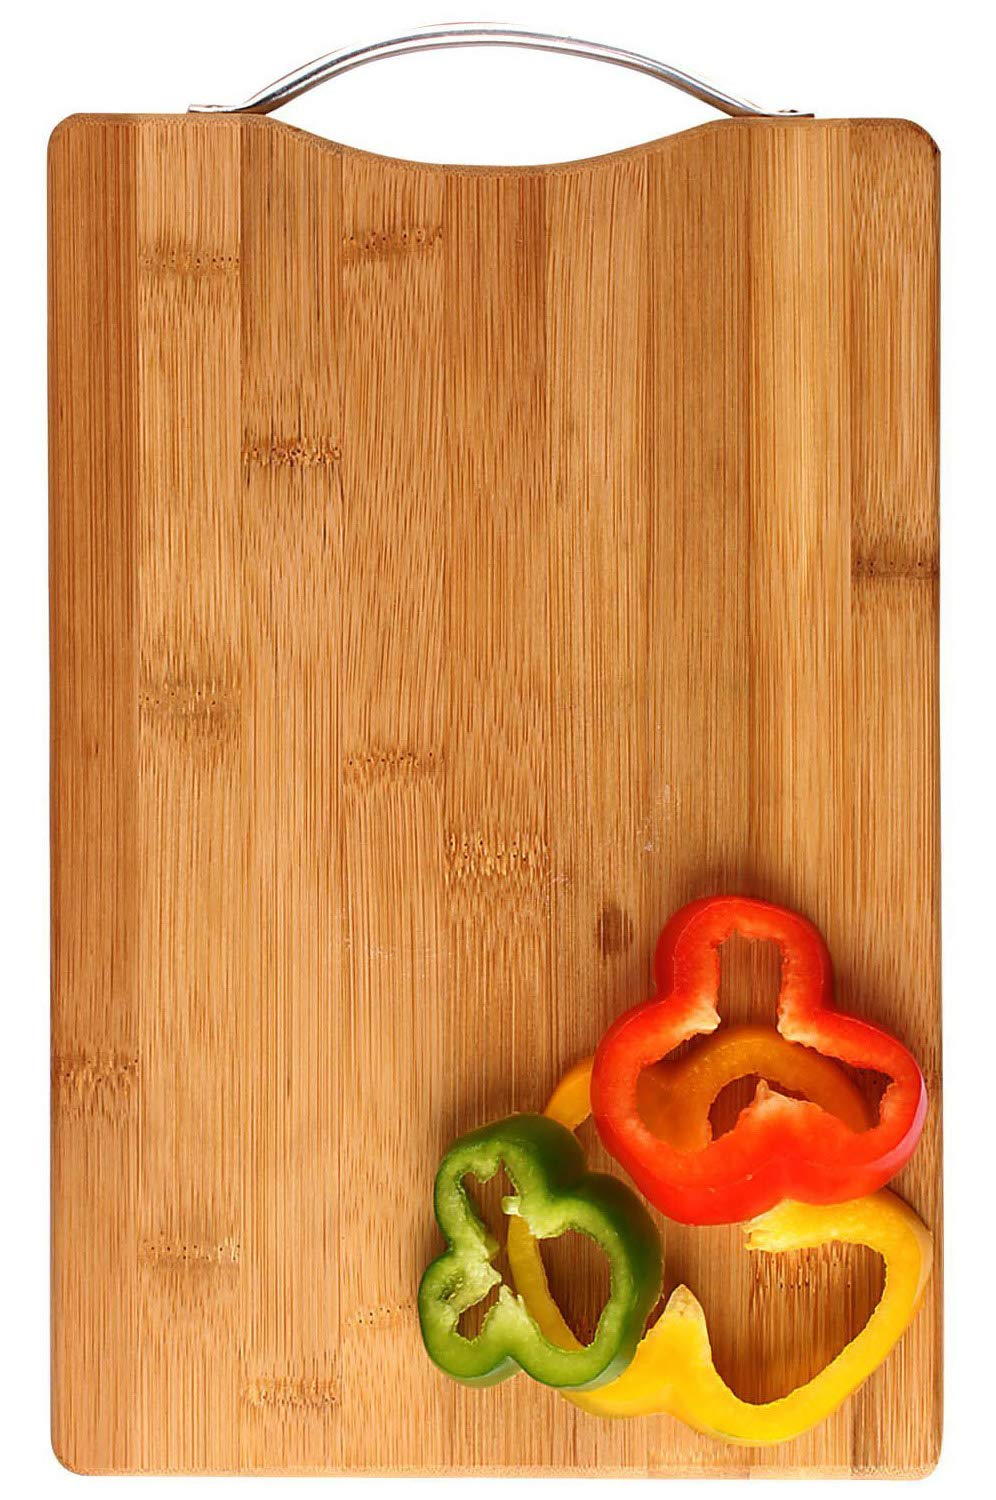 Wooden cutter board with some vegetables kept on it is a essential kitchen tool.